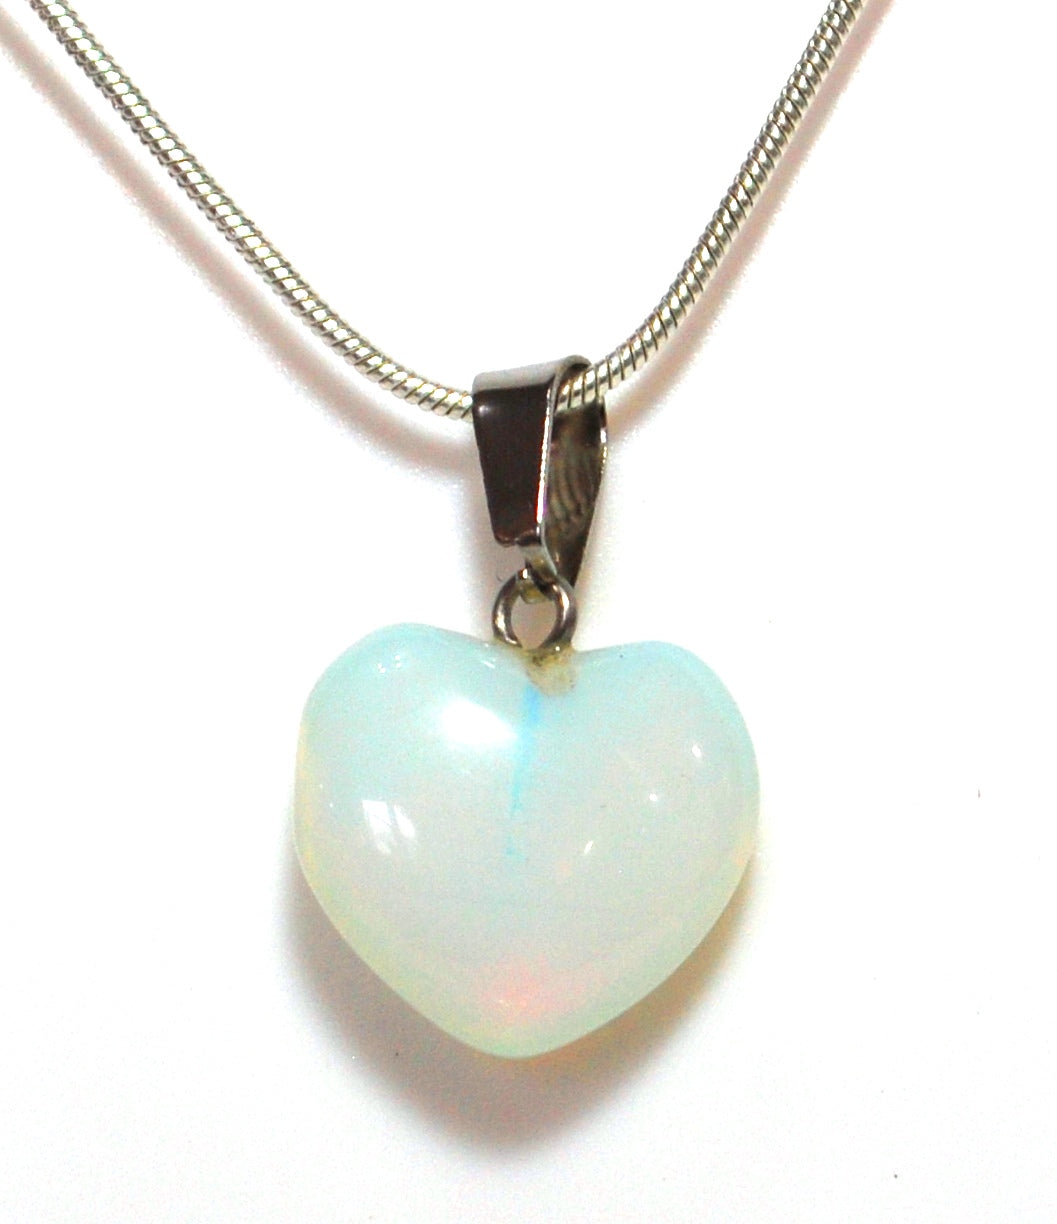 New! Opalite Heart Pendant Inc Silver Plated Snake Chain Gift Wrapped